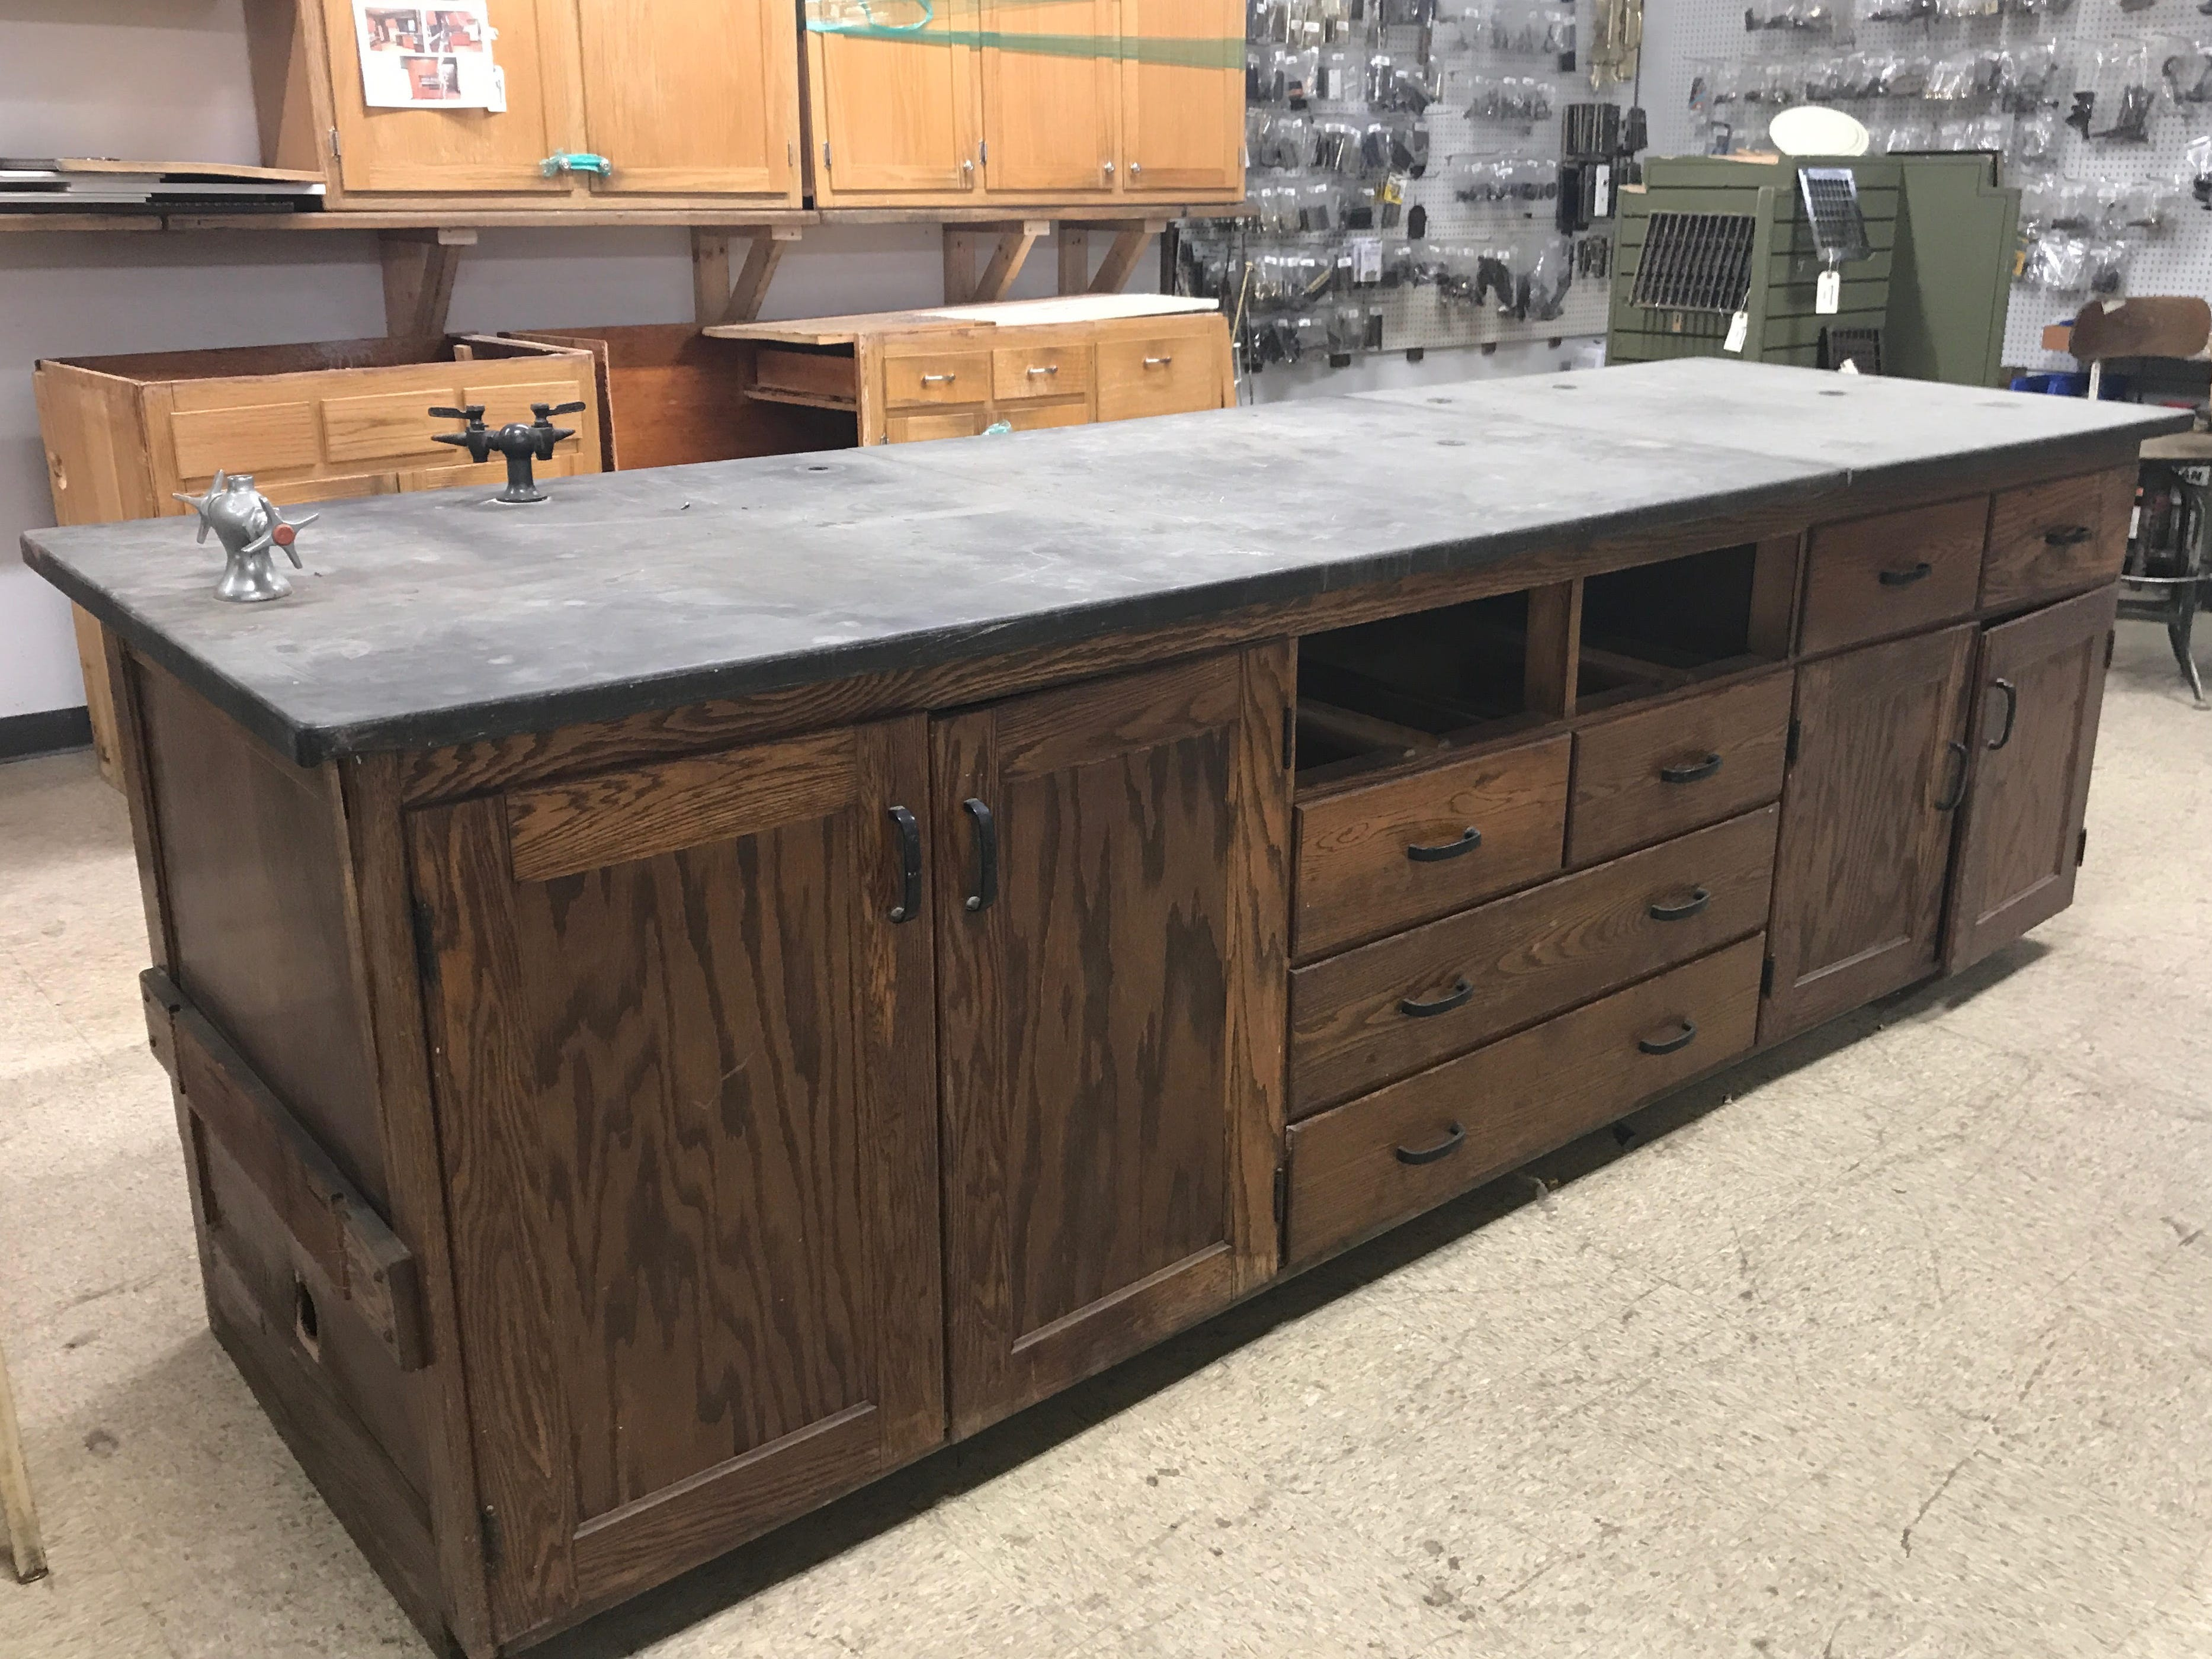 This antique chemistry lab table was used by two area homeowners to create kitchen islands. One purchased the top and the other the base.